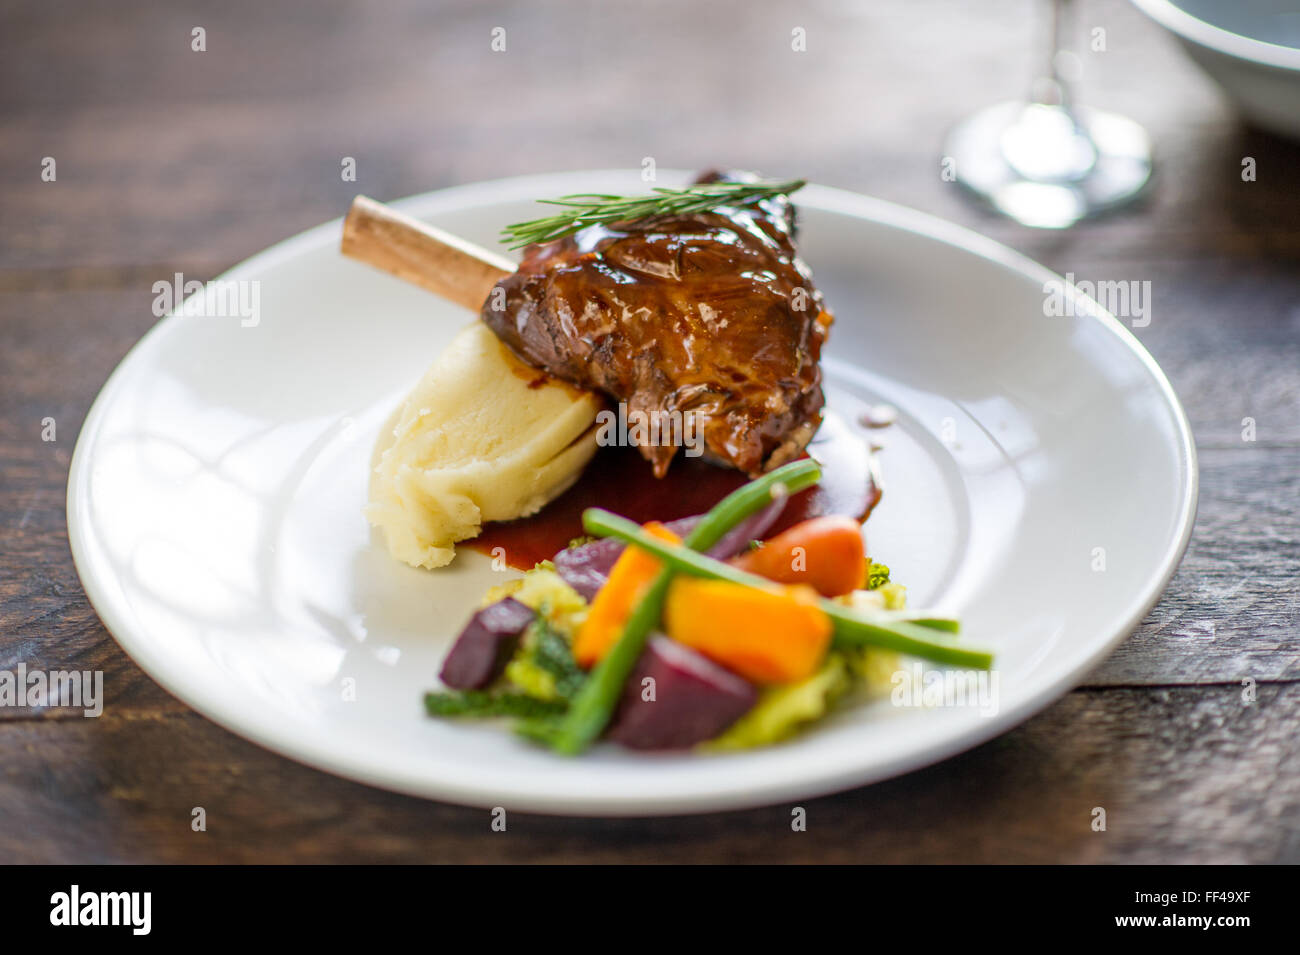 A lamb shank with mashed potato and vegetables on a plate - Stock Image